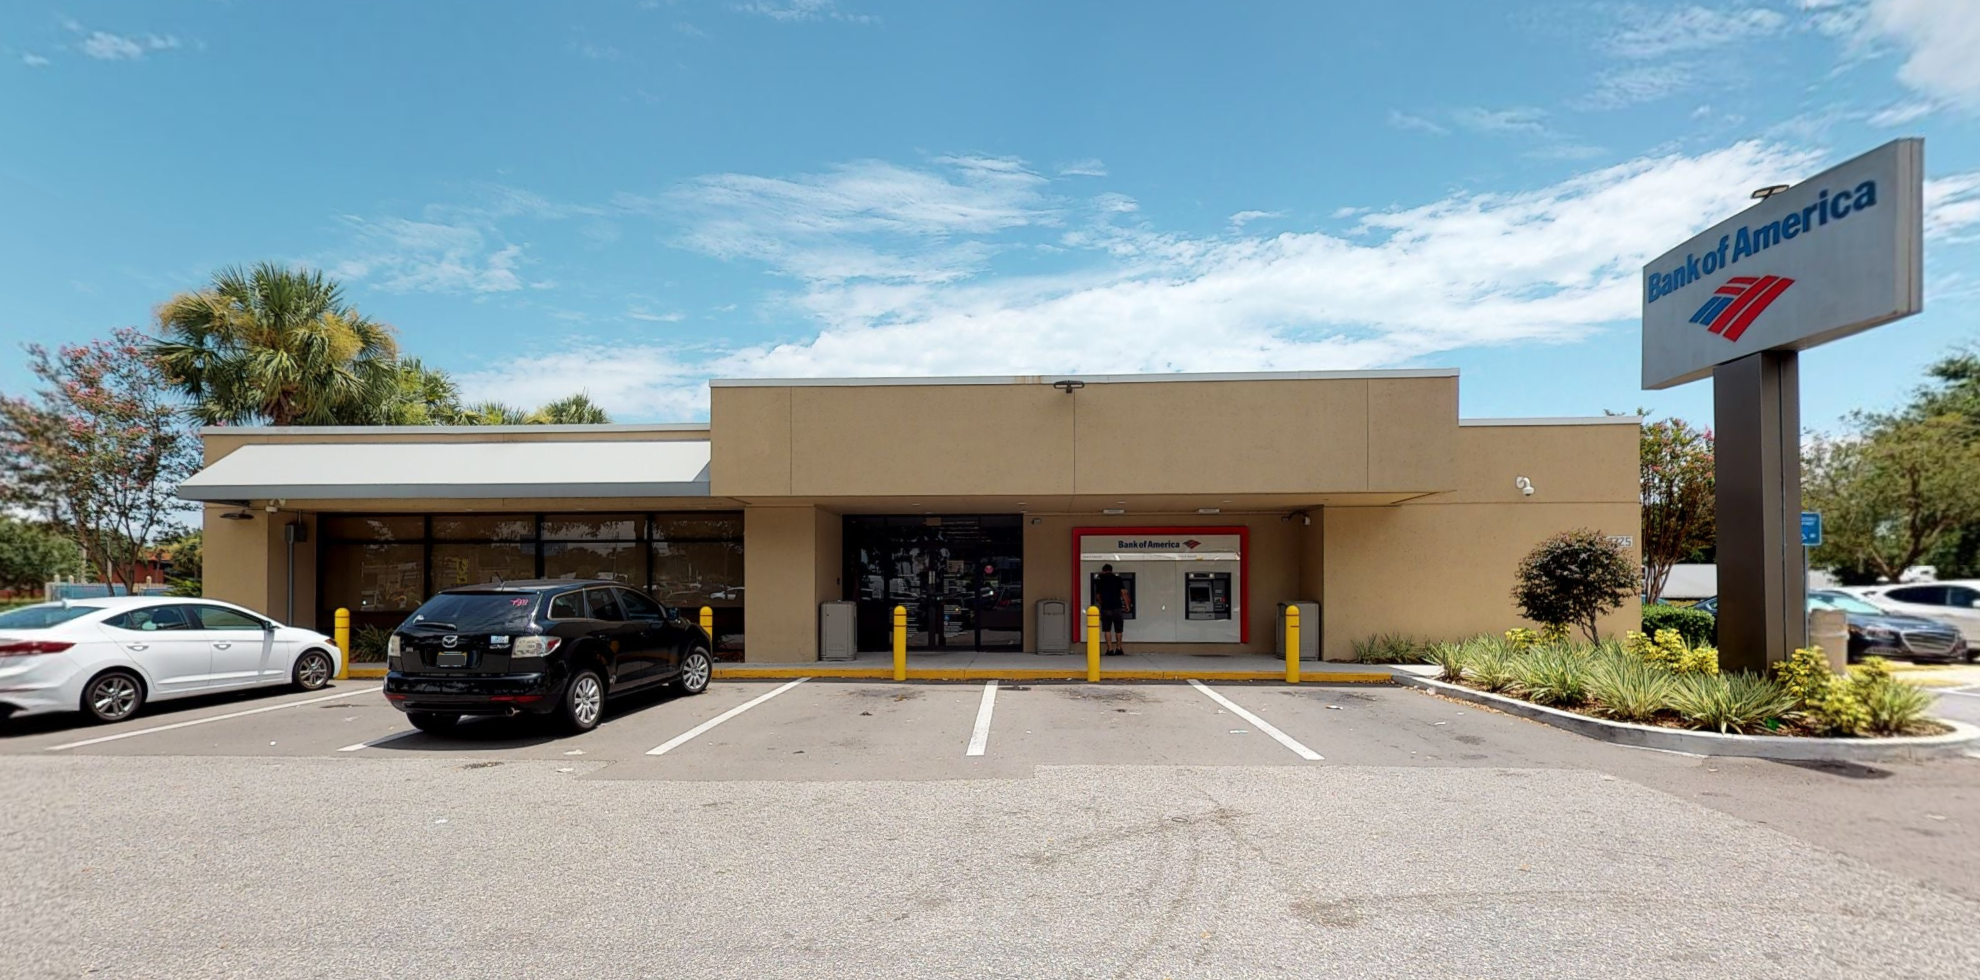 Bank of America financial center with drive-thru ATM and teller | 4725 S Kirkman Rd, Orlando, FL 32811